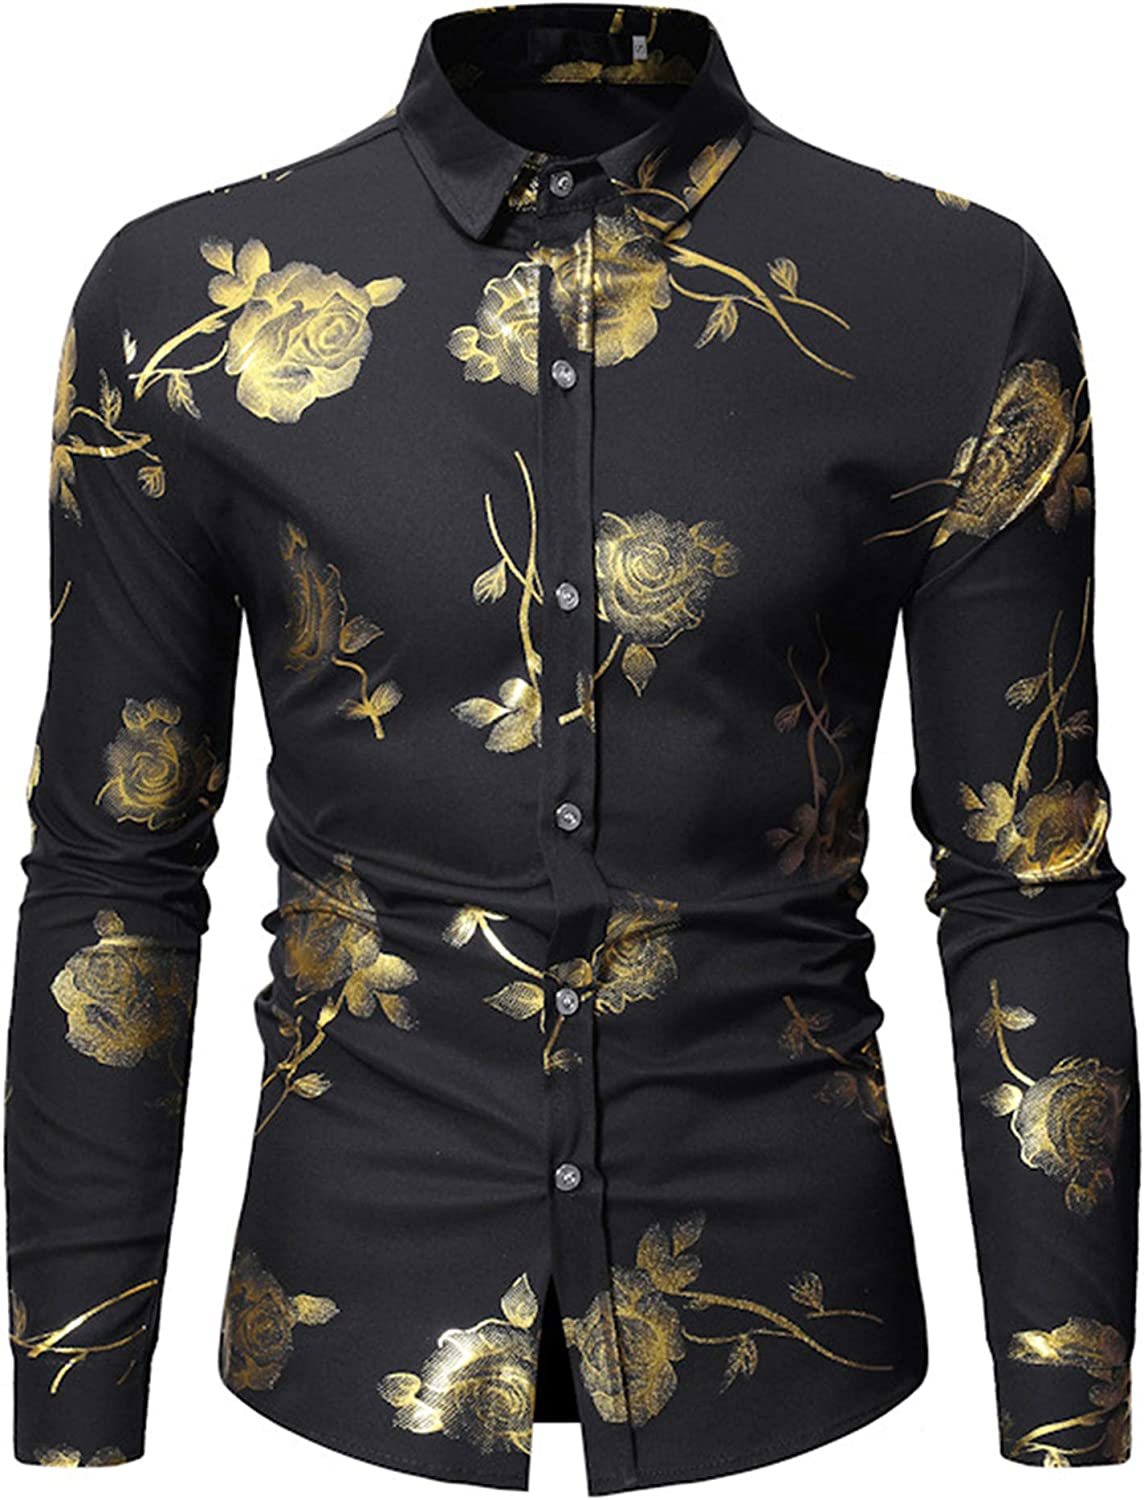 HOP Fashion Mens Luxury Gold Rose Print Shirt Long Sleeve Slim Fit Button Down Dress Shirts for Party/Wedding/Shows